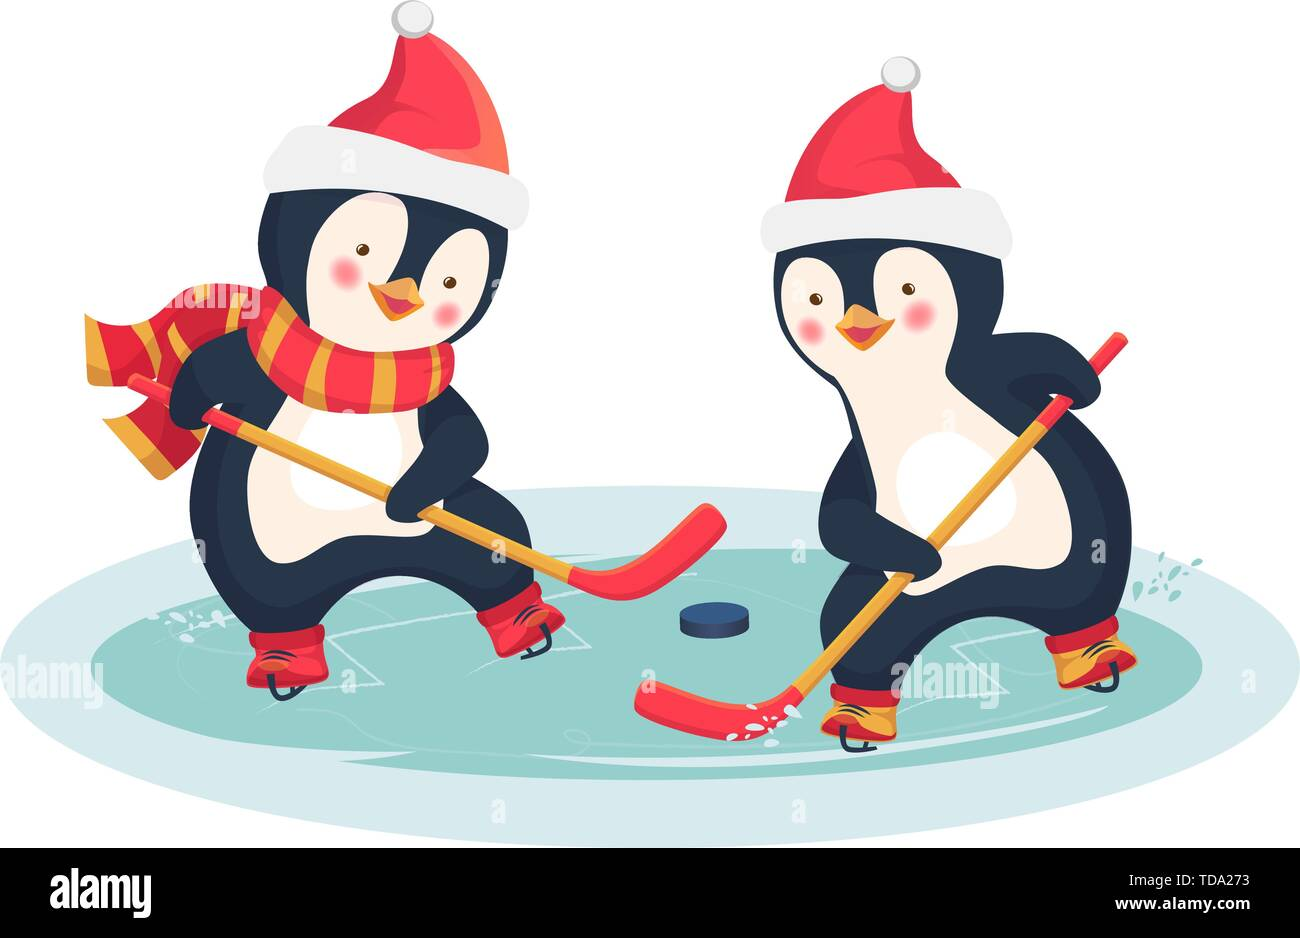 Childrens Sports Concept Christmas Penguin Play Ice Hockey In The Winter Kids Hockey Vector Illustration Stock Vector Image Art Alamy